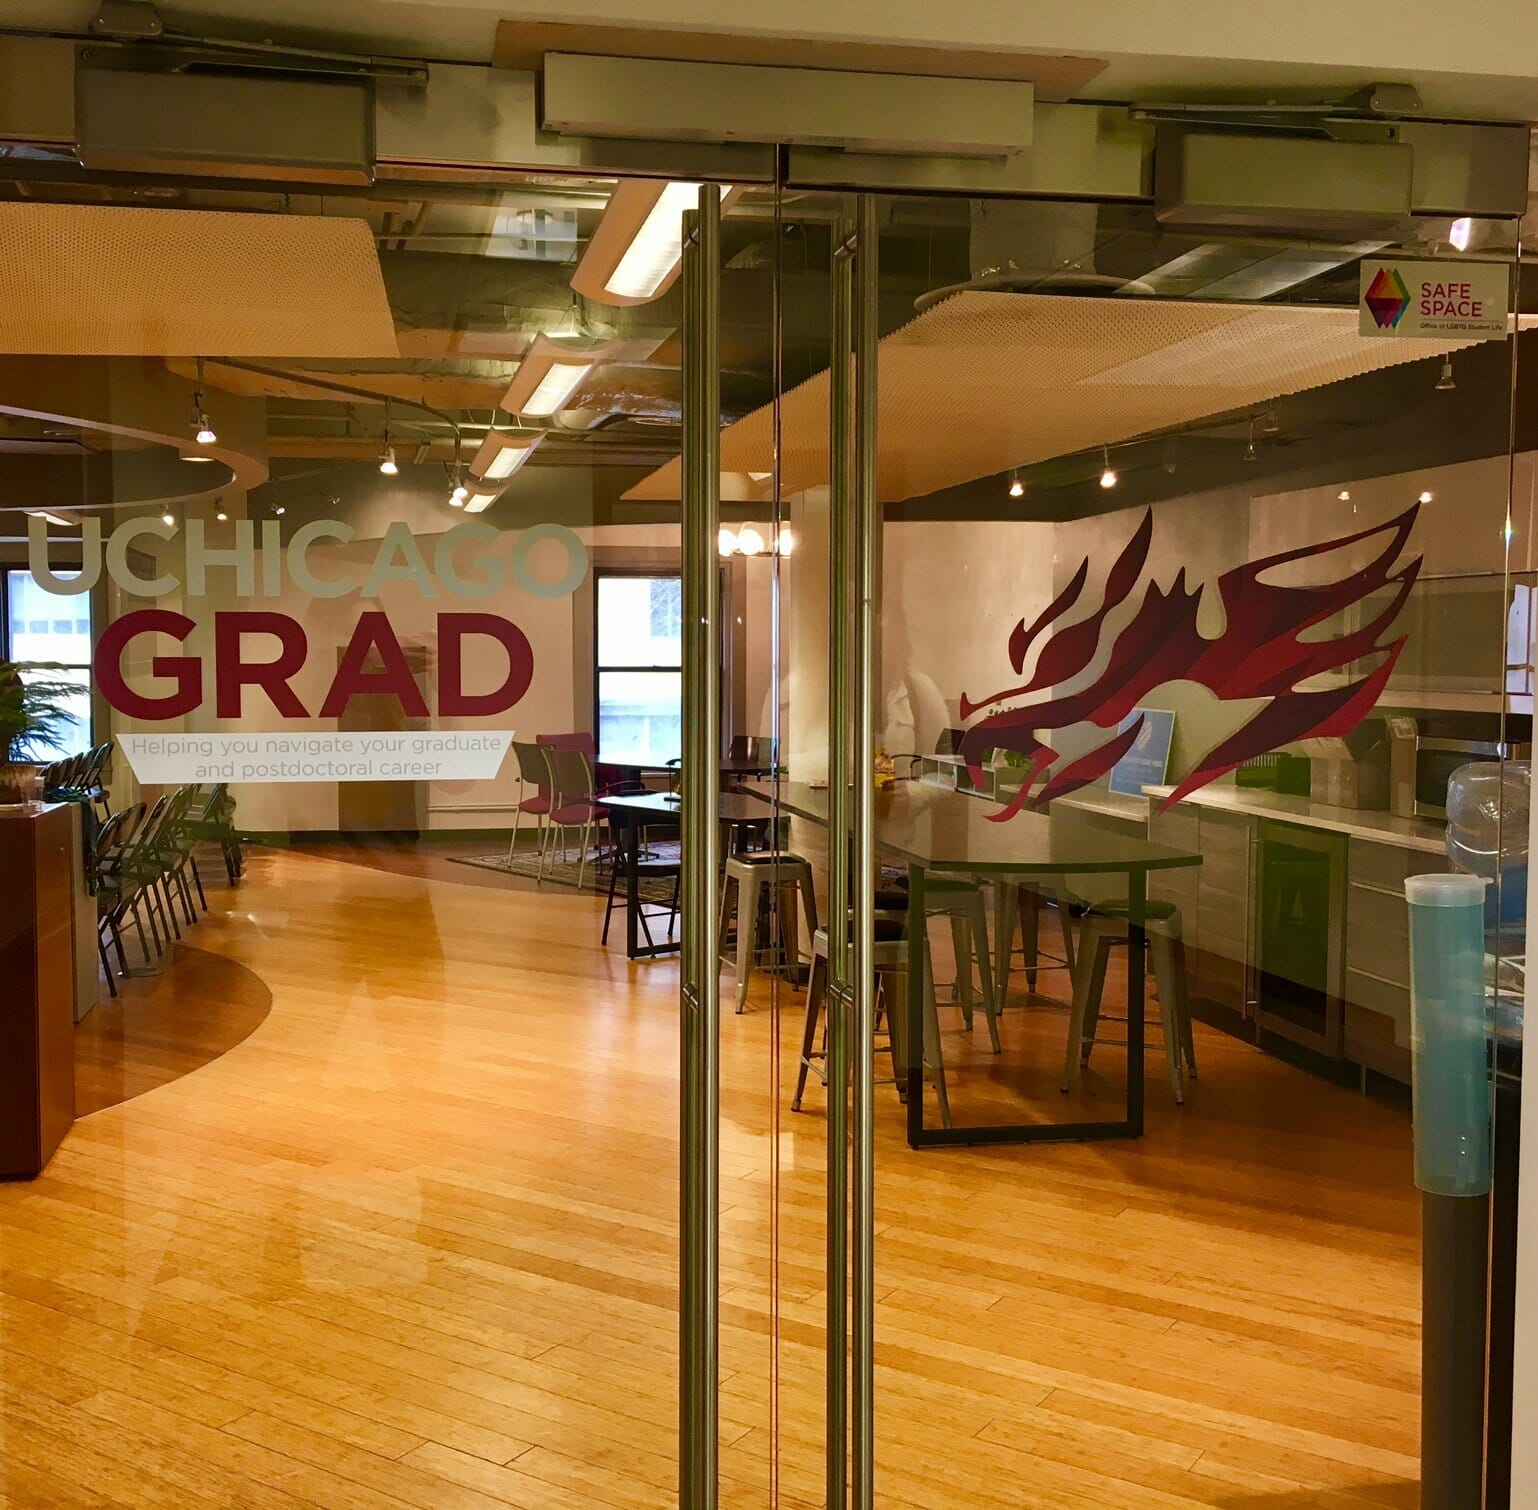 UChicago GRAD HQ space.